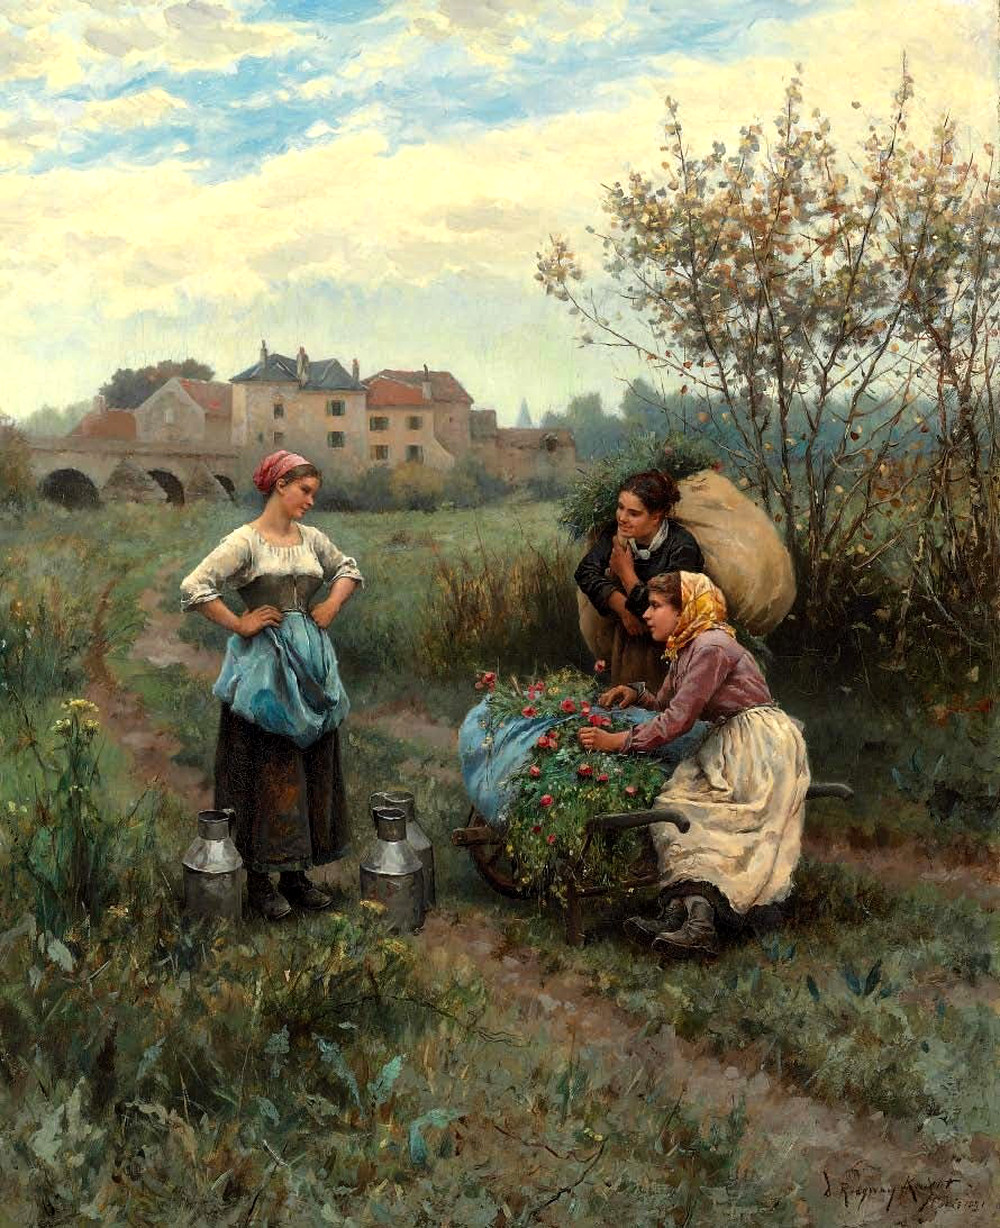 Three Women in a Landscape by Daniel Ridgway Knight, 1881